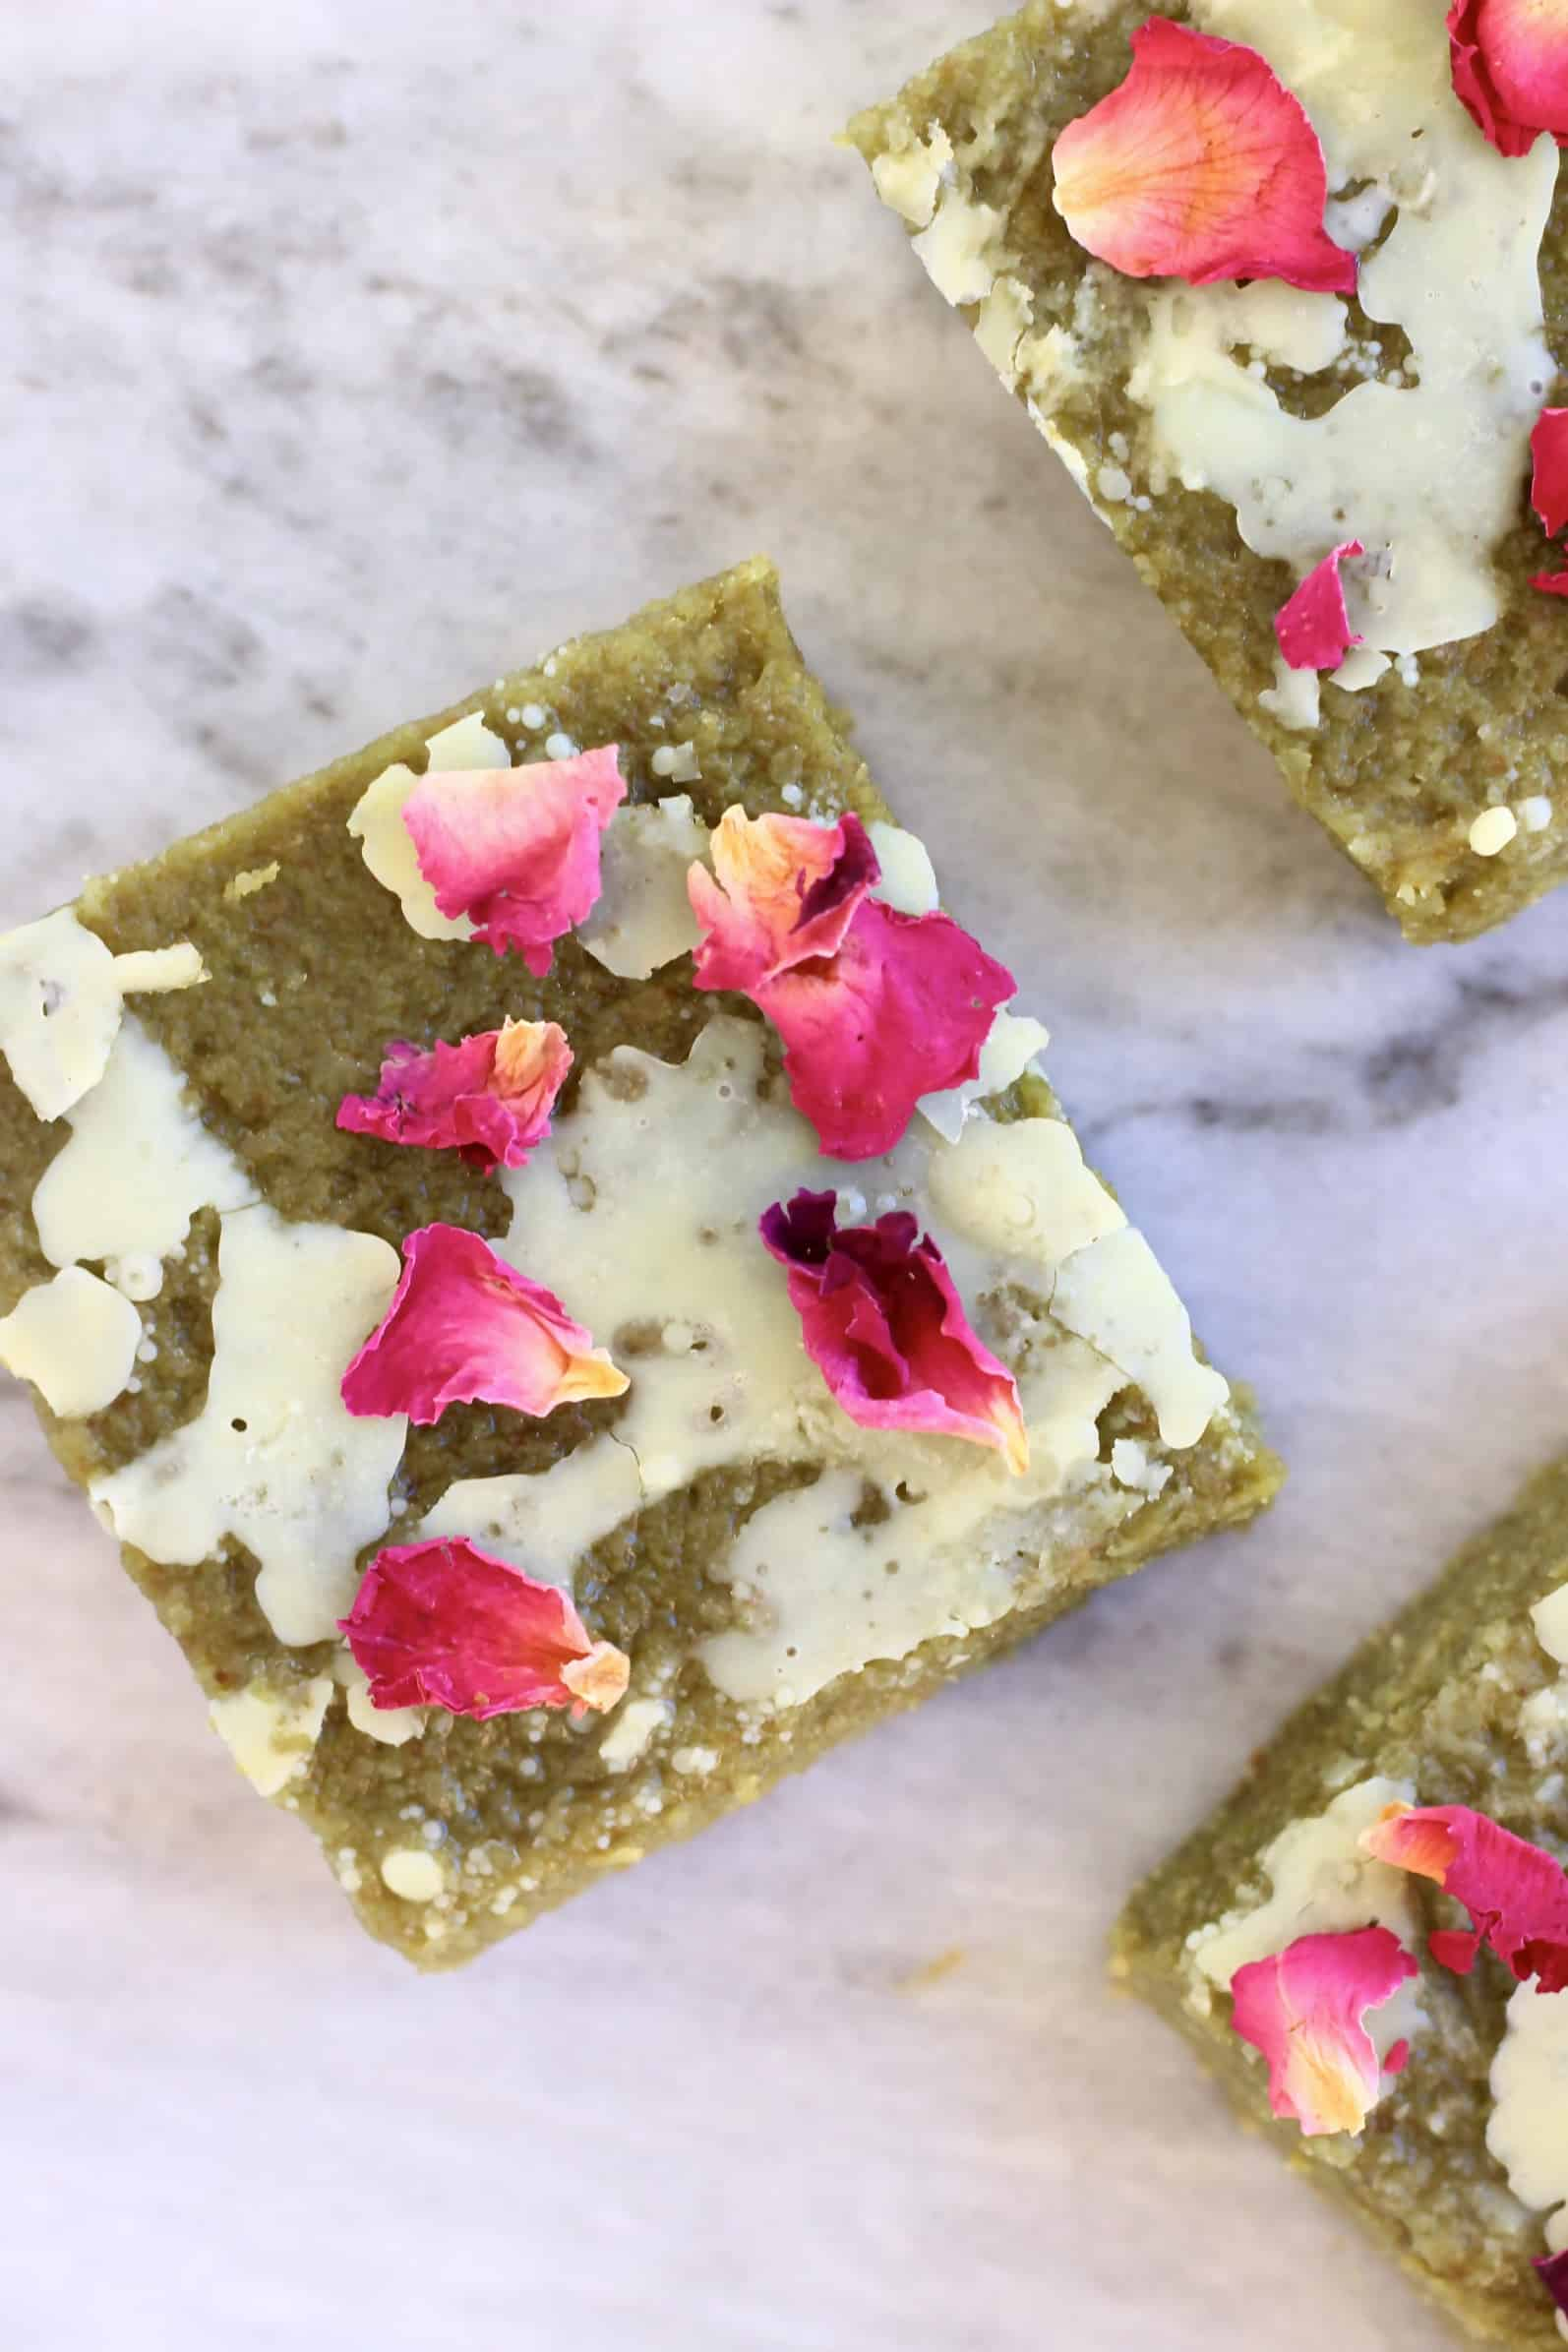 Three gluten-free vegan matcha brownies drizzled with white chocolate and decorated with rose petals